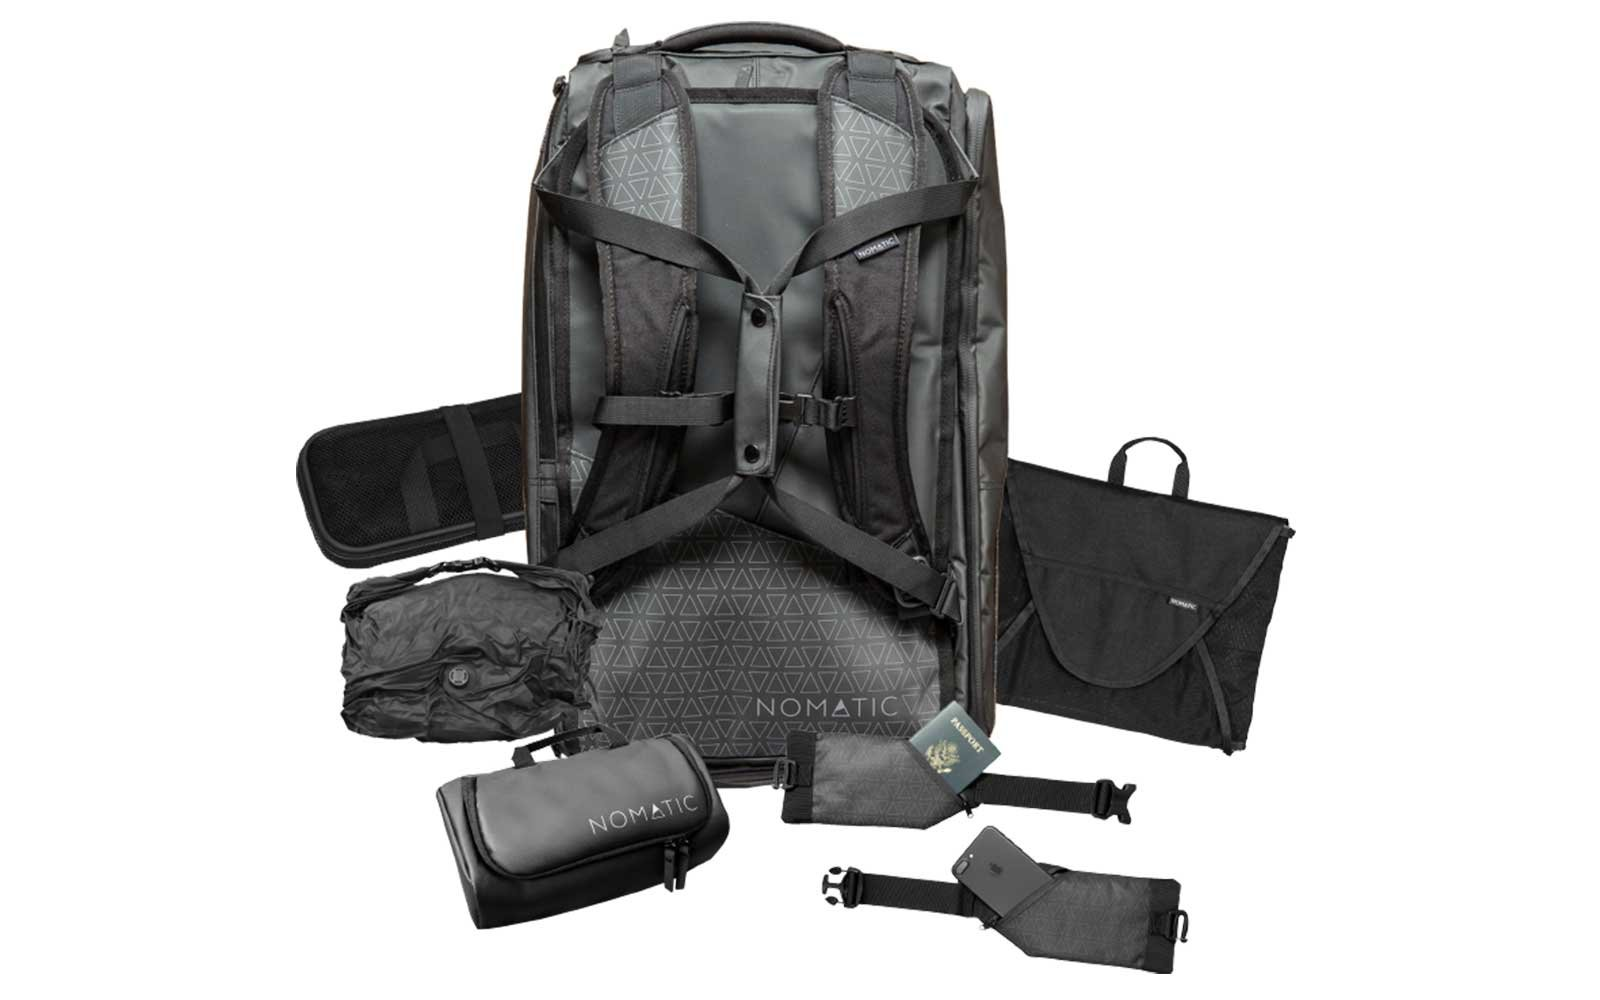 d7c83392cacb Multi-Compartment Travel Bags